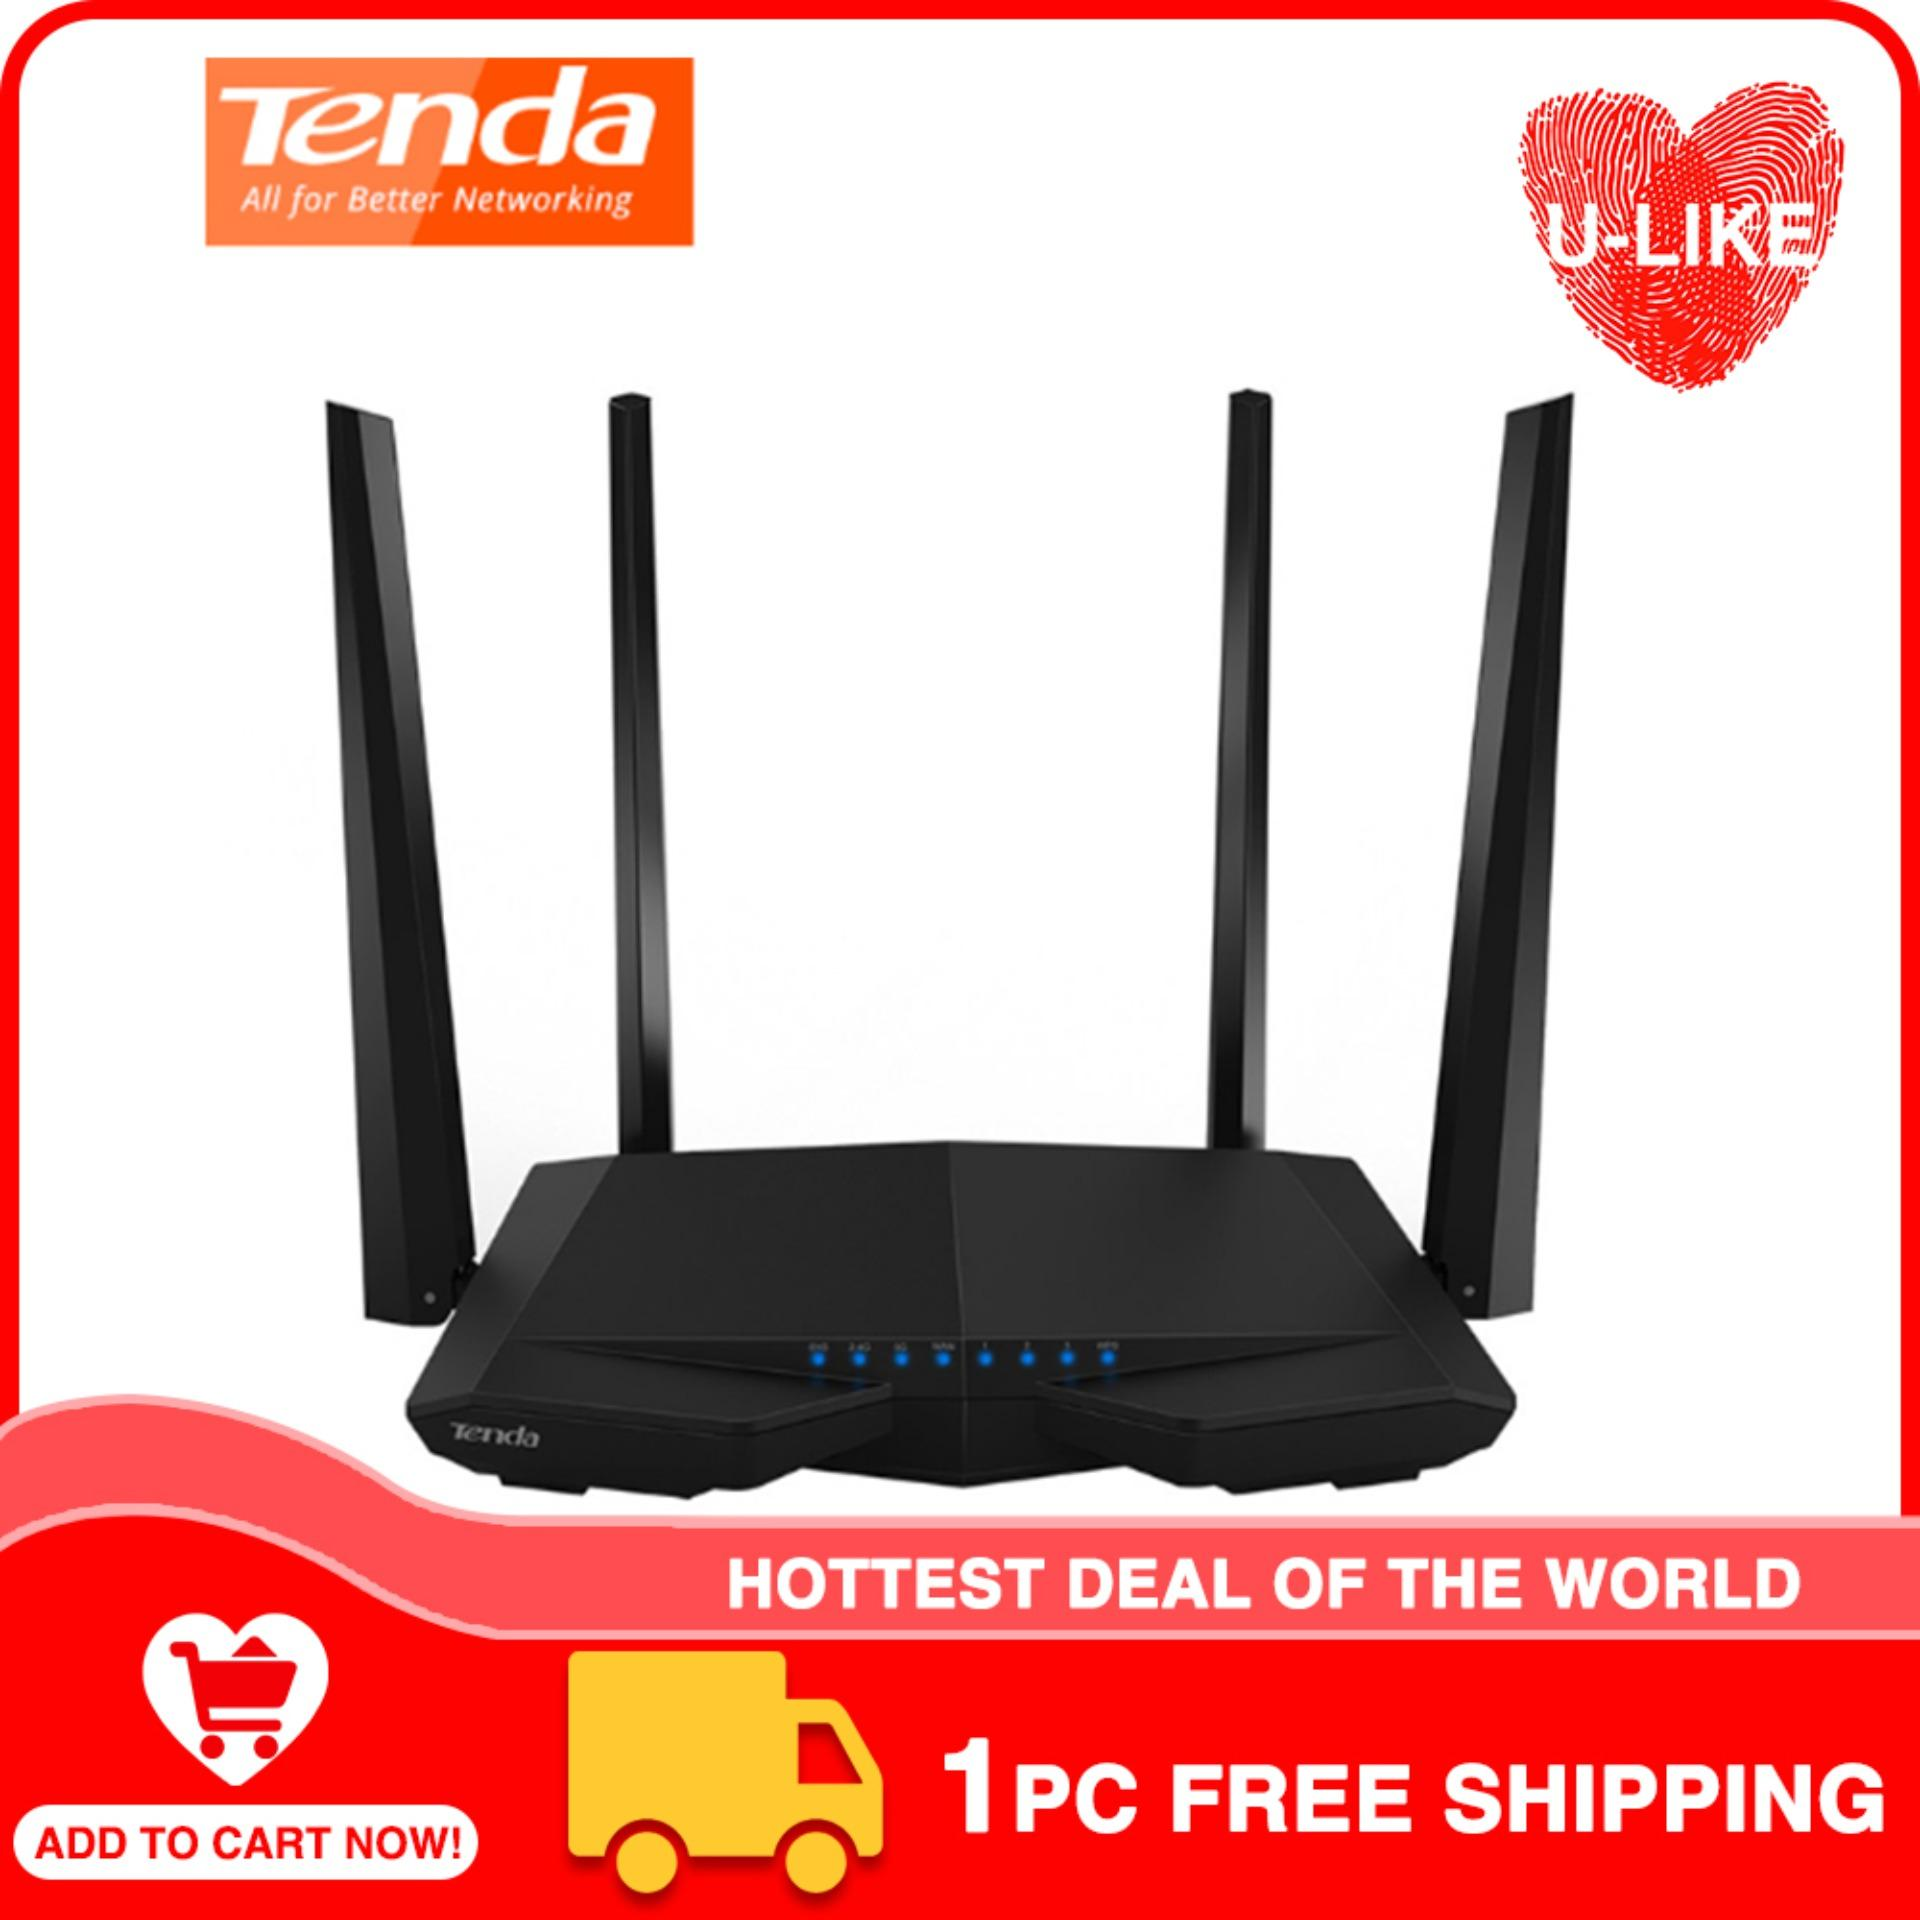 Routers for sale - Internet Routers prices, brands & specs in